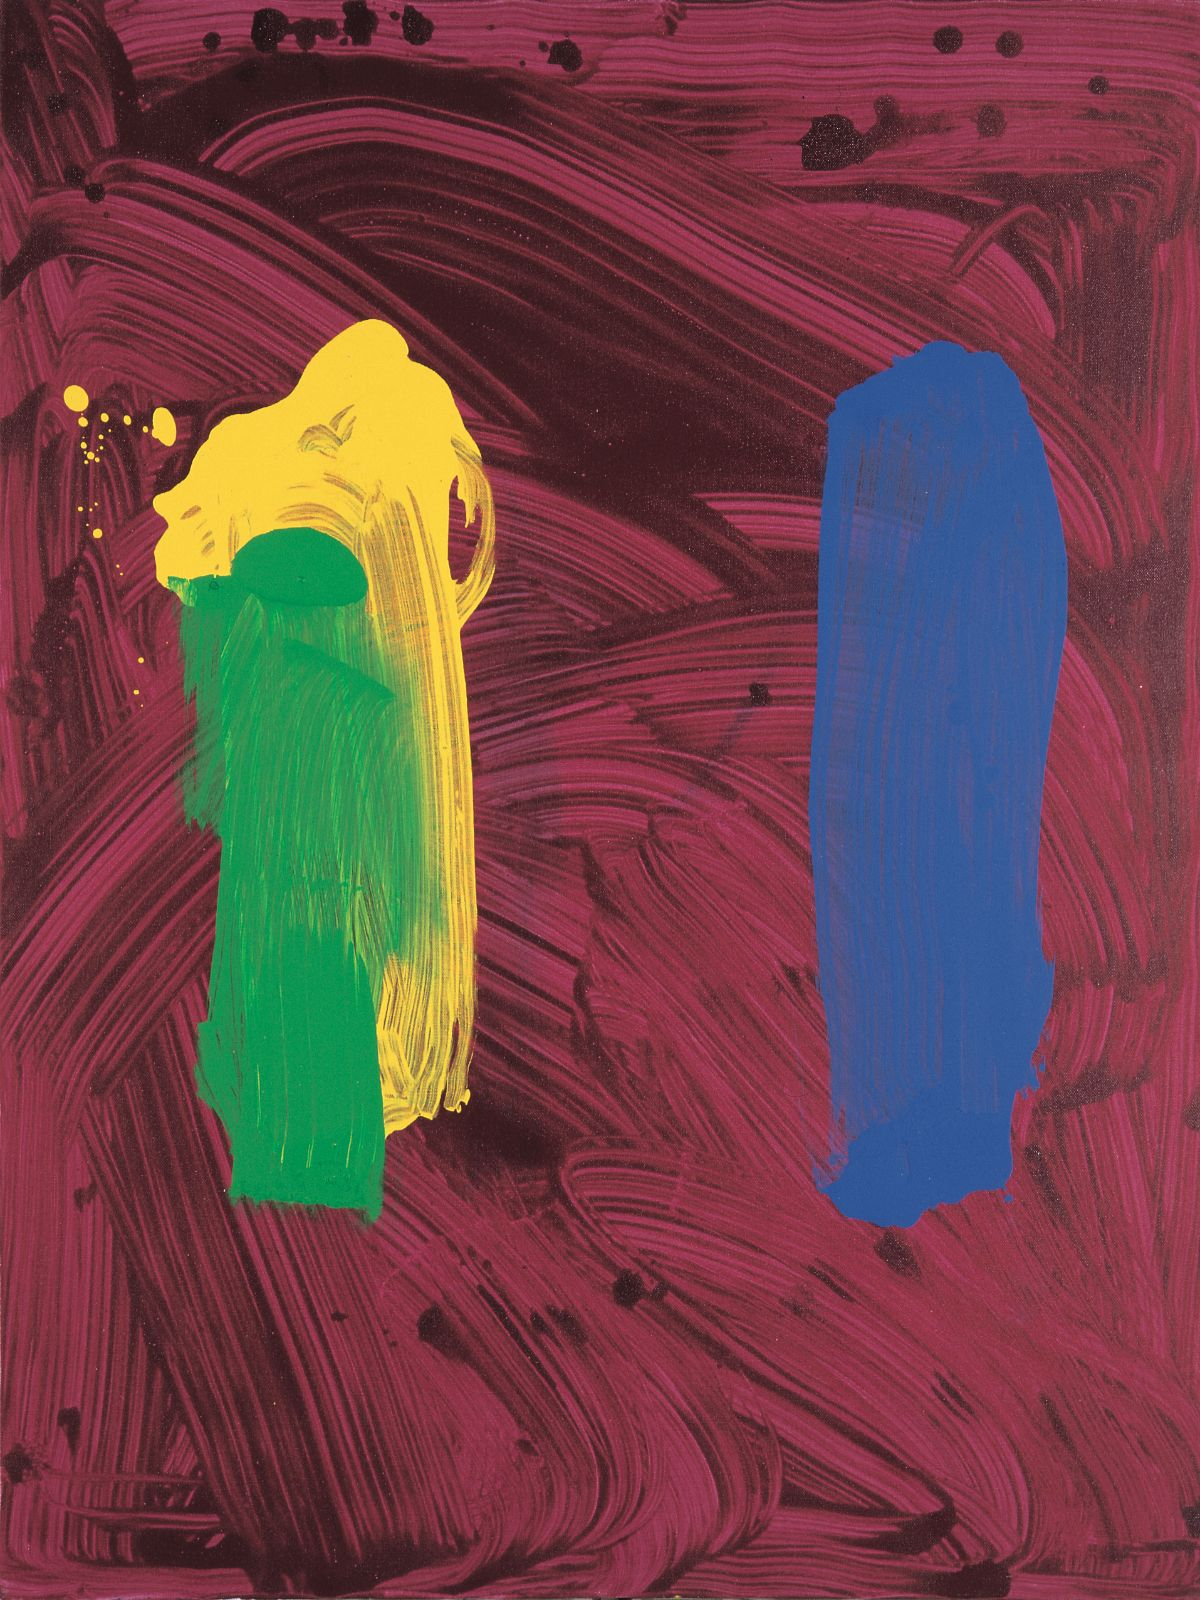 Untitled (Pearl-Paintings), 1994, acrylic on canvas, 100 x 75 cm